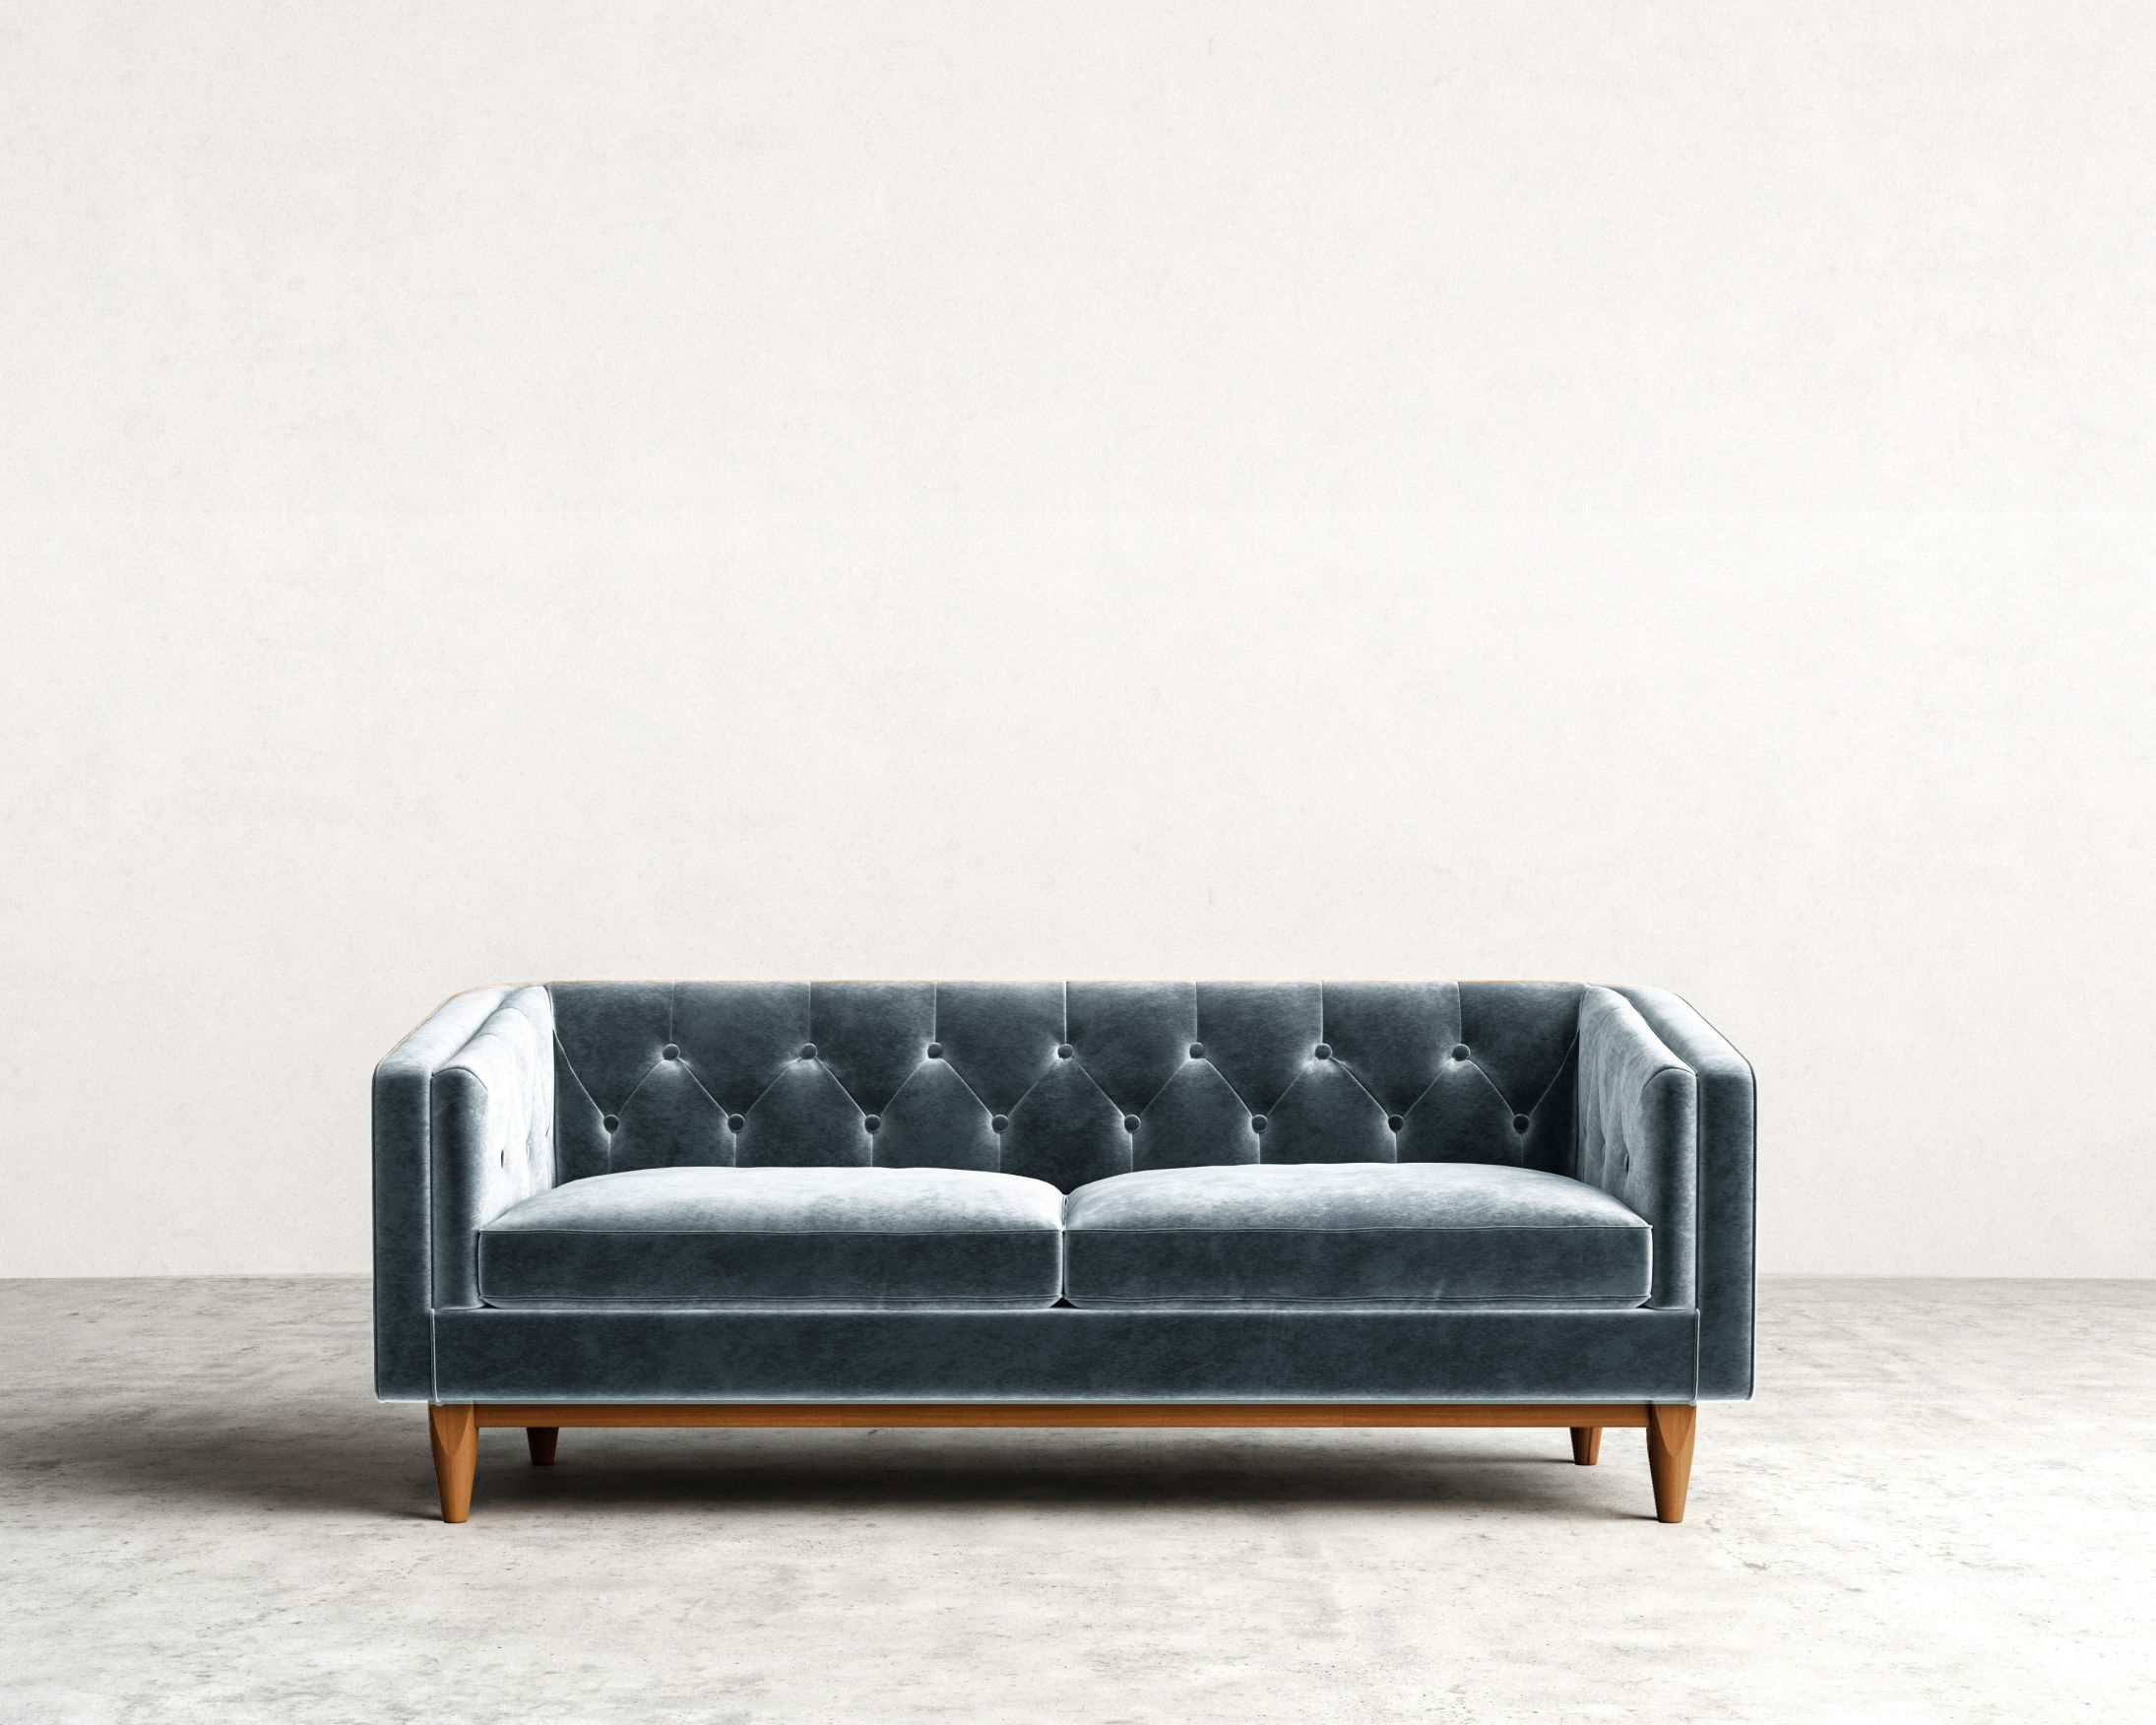 century furniture sofa quality how to design a table where shop for mid modern sofas 12 places